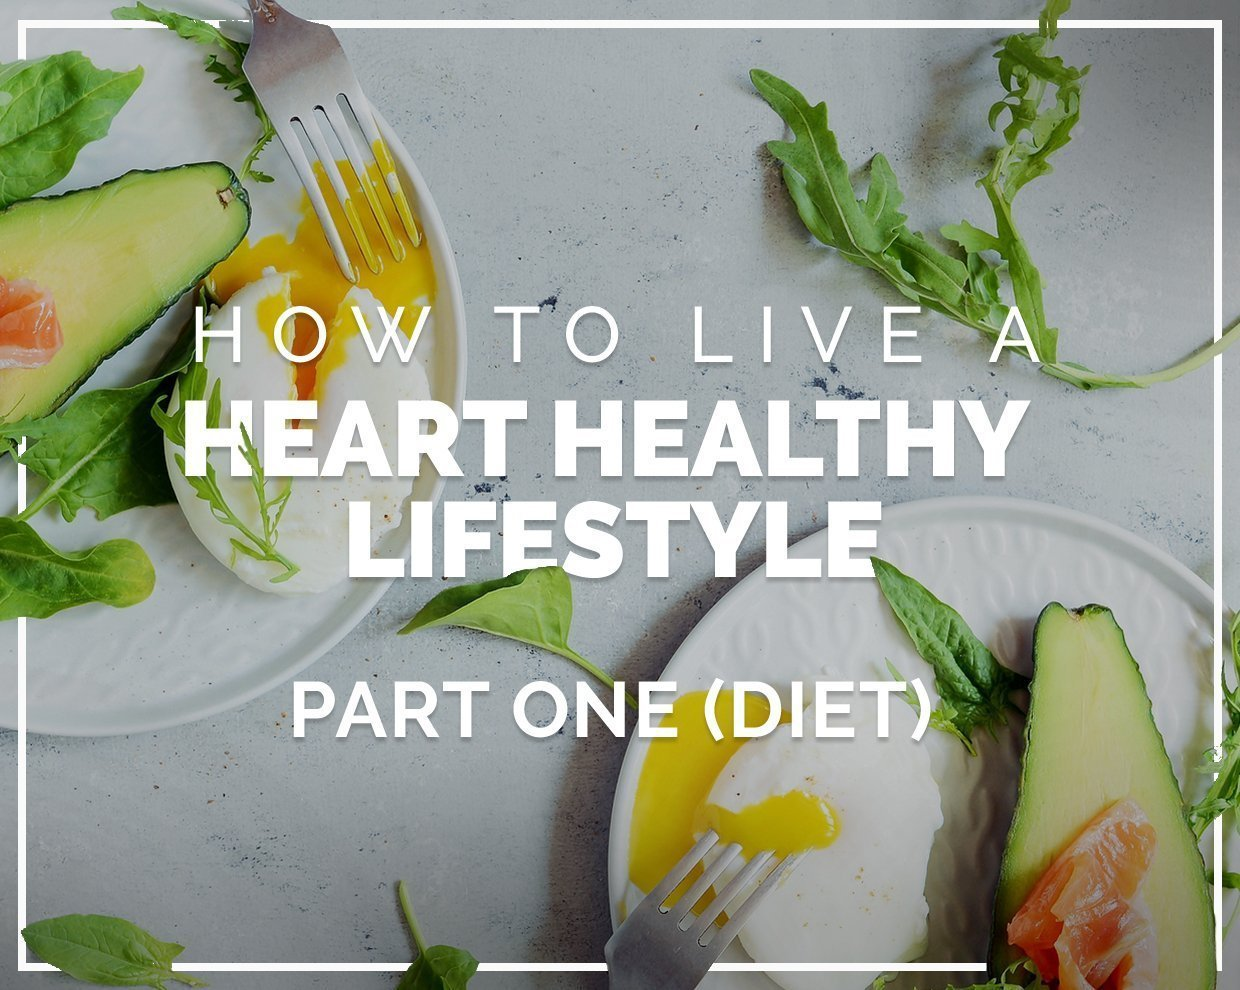 How to live a heart healthy lifestyle - Part One